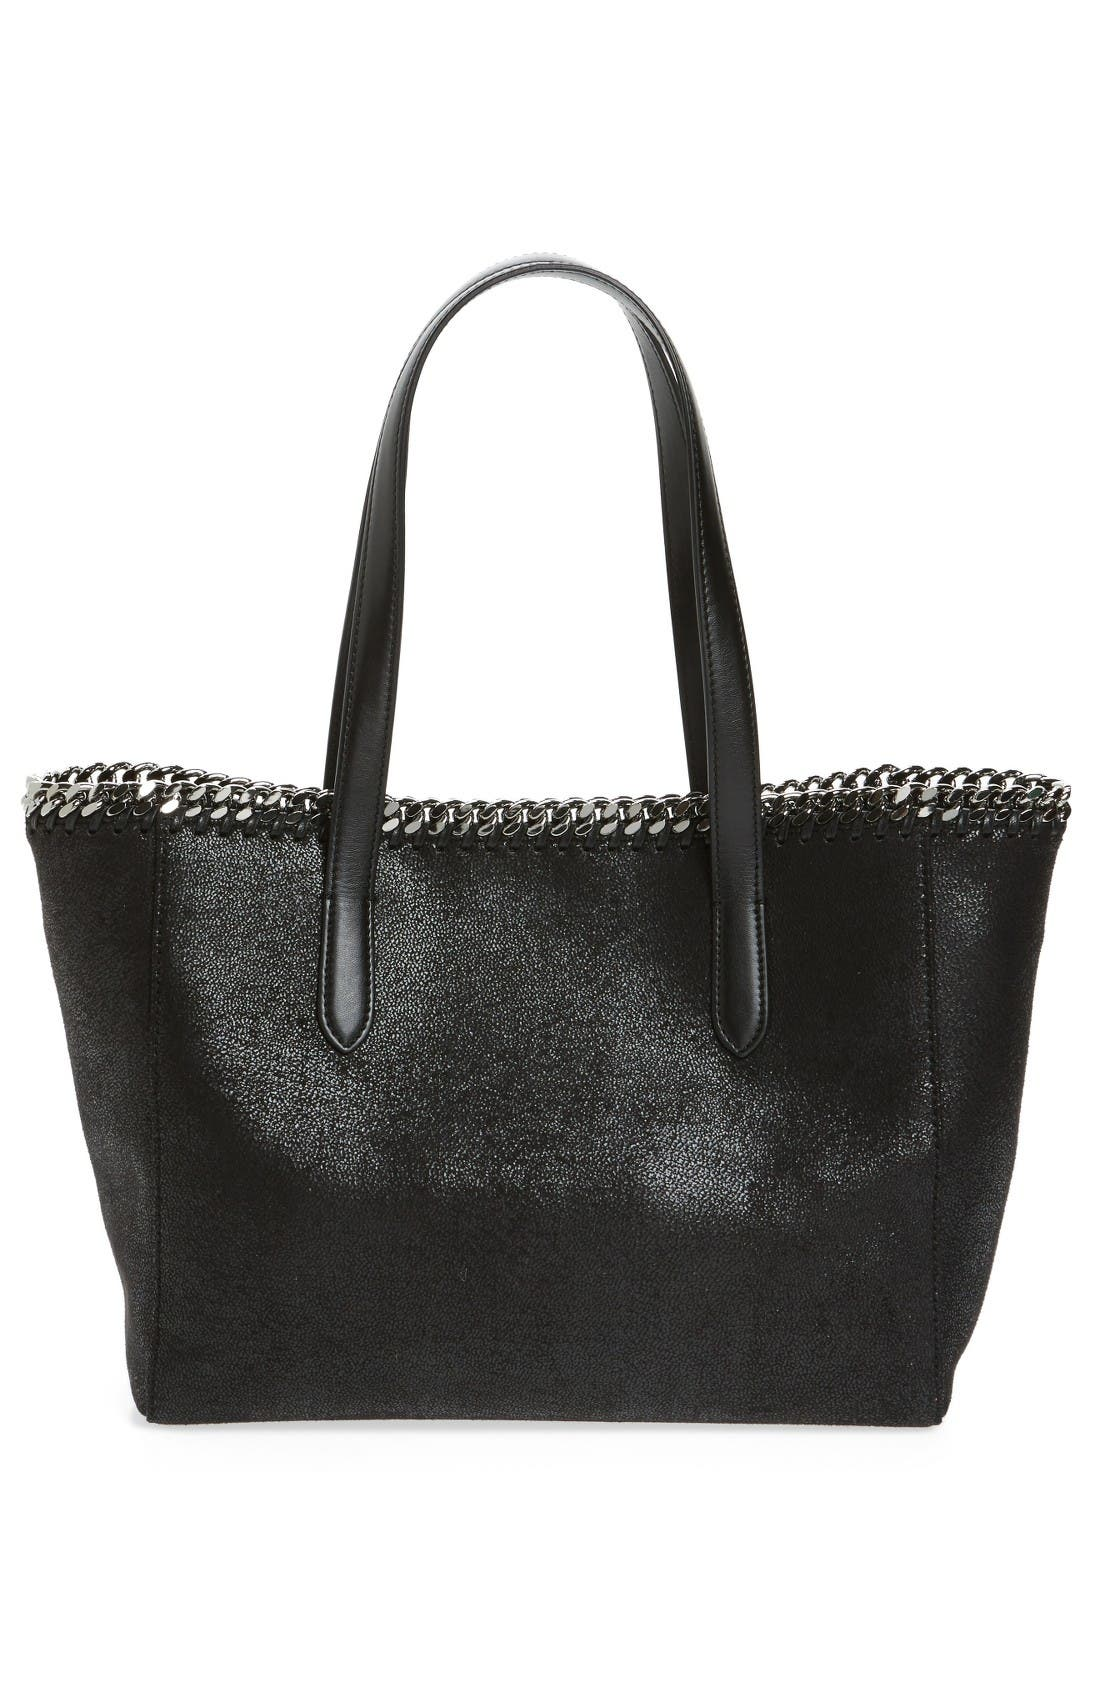 Alternate Image 3  - Stella McCartney Small Falabella Shaggy Deer Faux Leather Tote